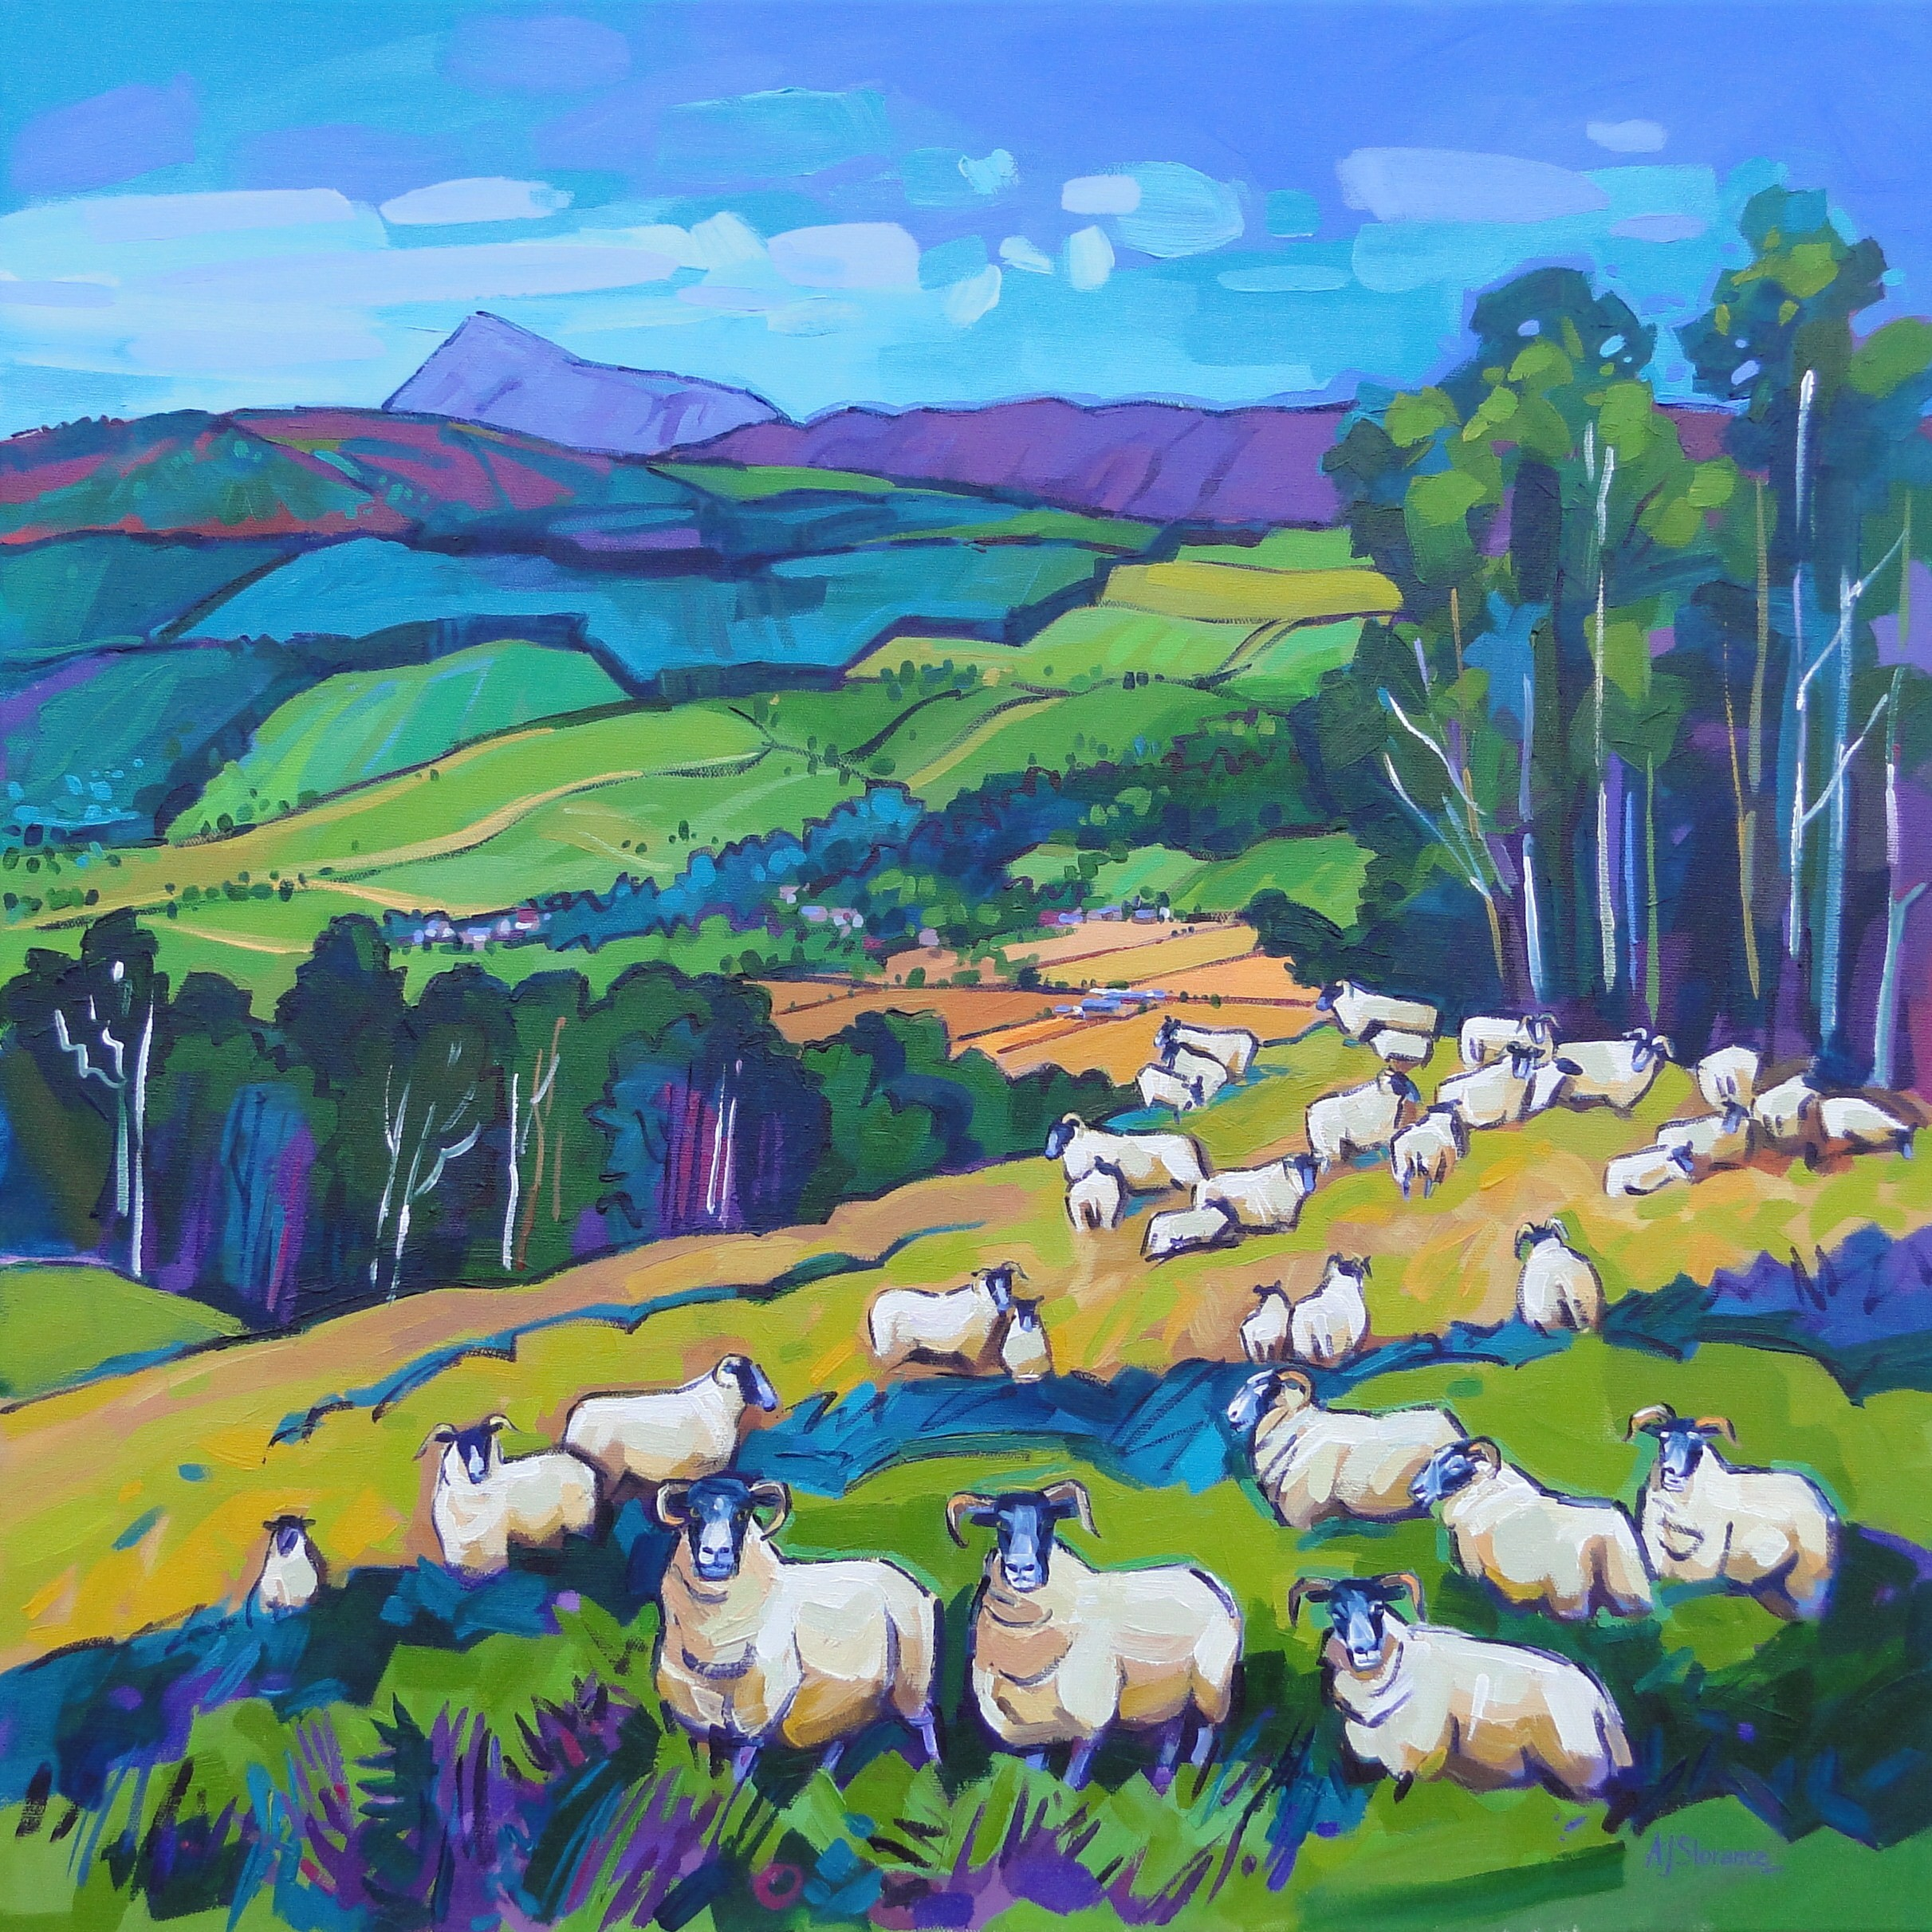 451-Blackface-sheep-and-Schiehallion-Audrey-Slorance